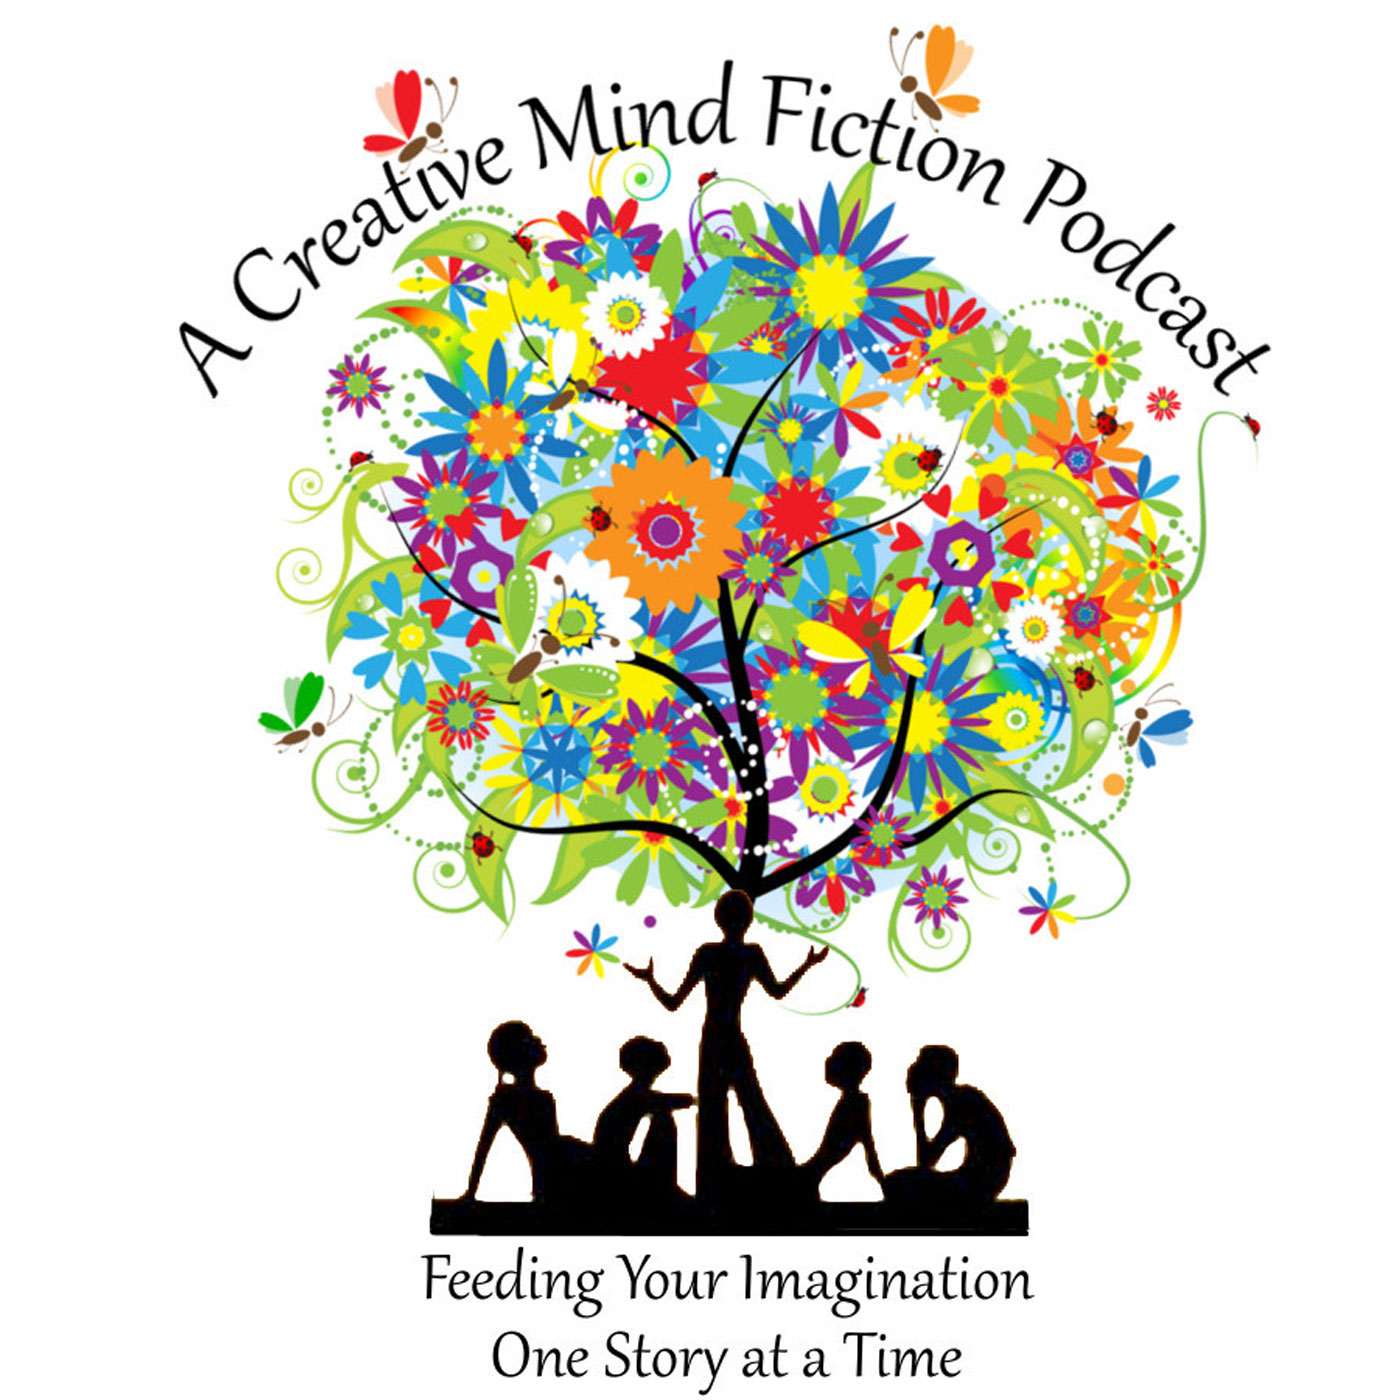 A Creative Mind Fiction Podcast, Short Stories & Flash Fiction Audio Books by Alice Nelson and Carrie Zylka show art